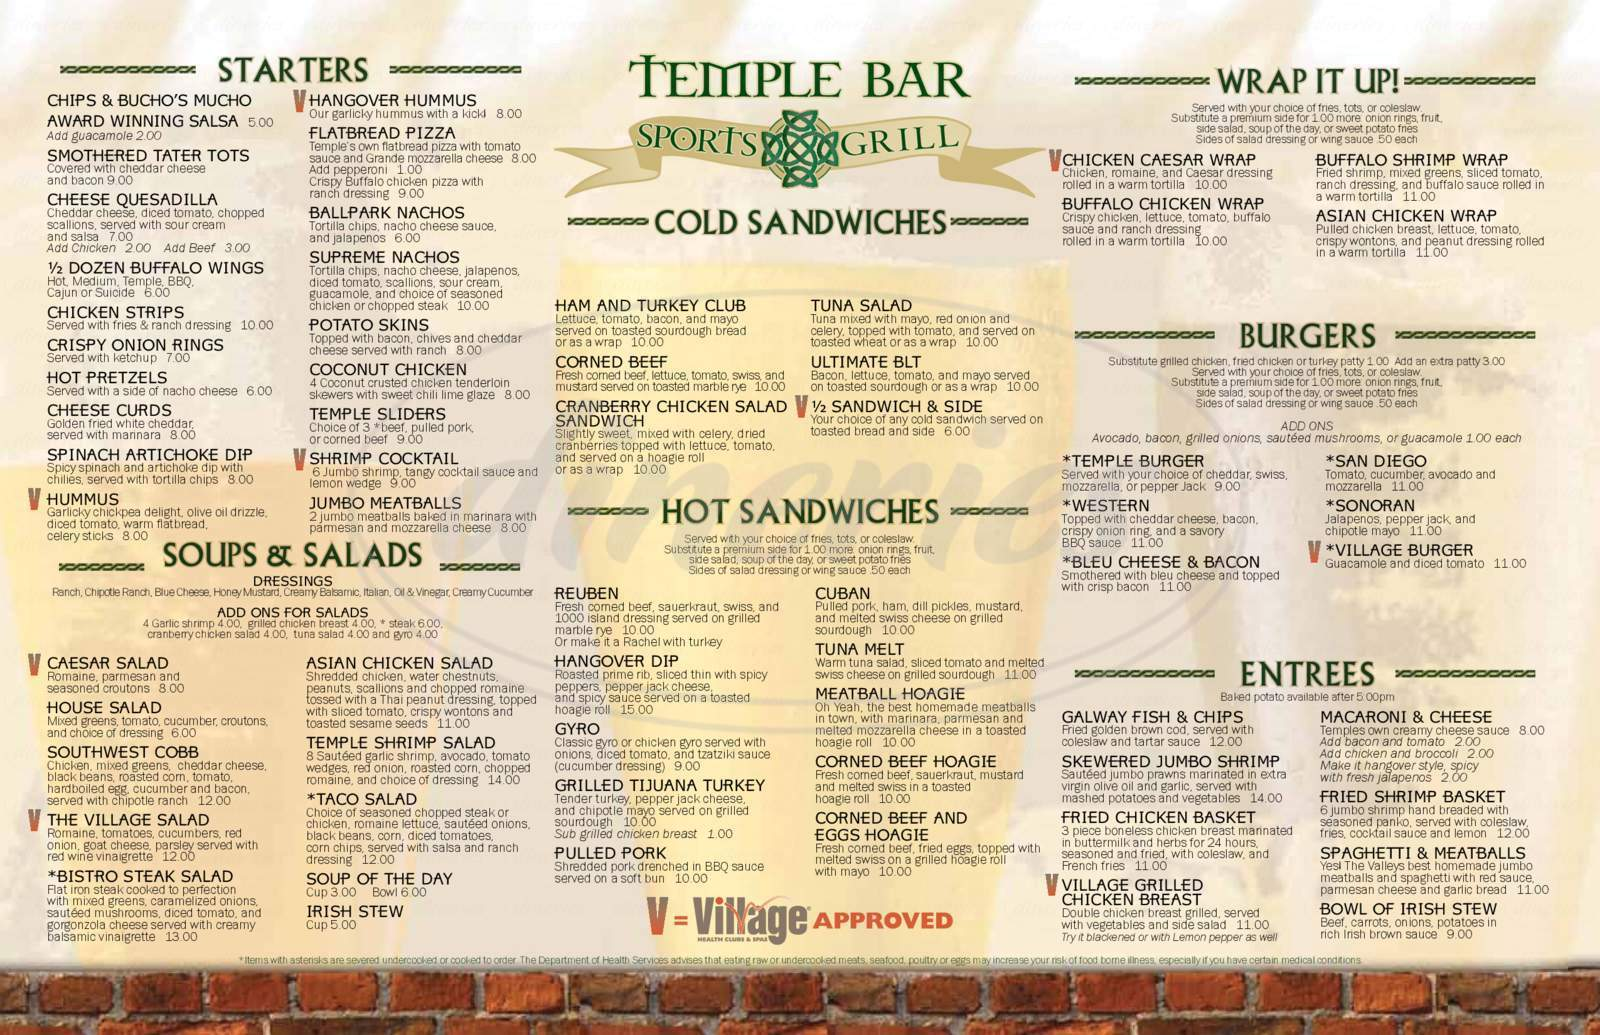 menu for Temple Bar Sports Grill